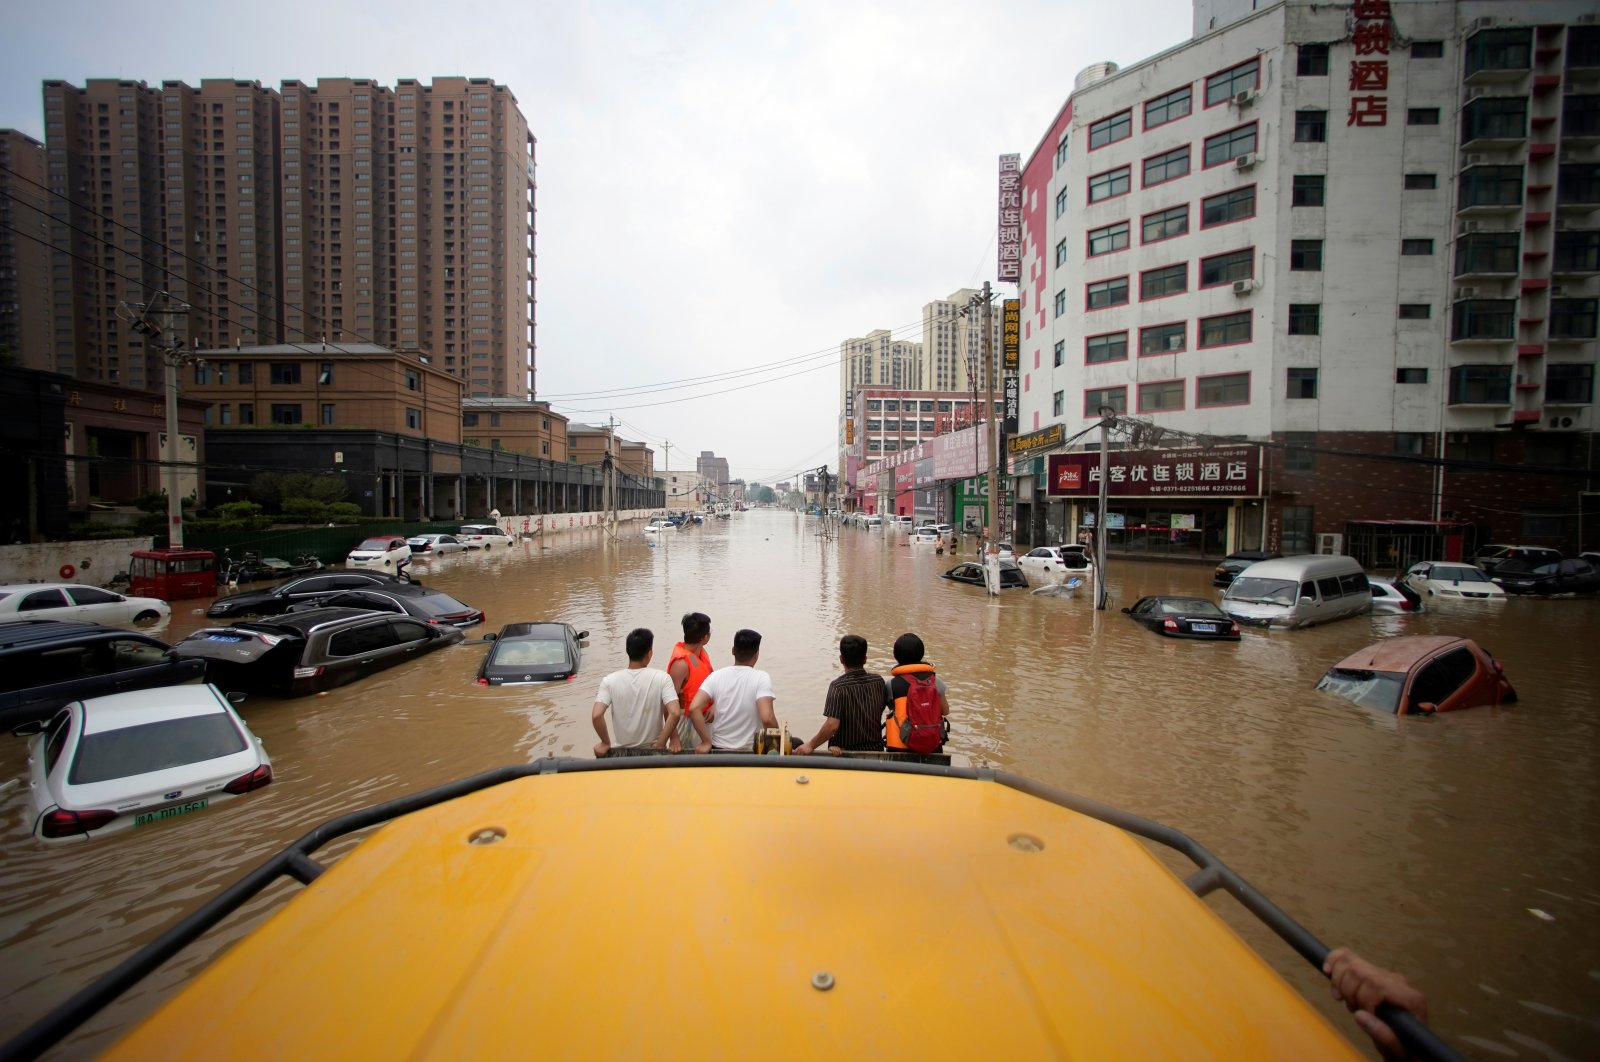 People ride a front loader as they wade through a flooded road following heavy rainfall in Zhengzhou, Henan province, China, July 22, 2021. (Reuters Photo)